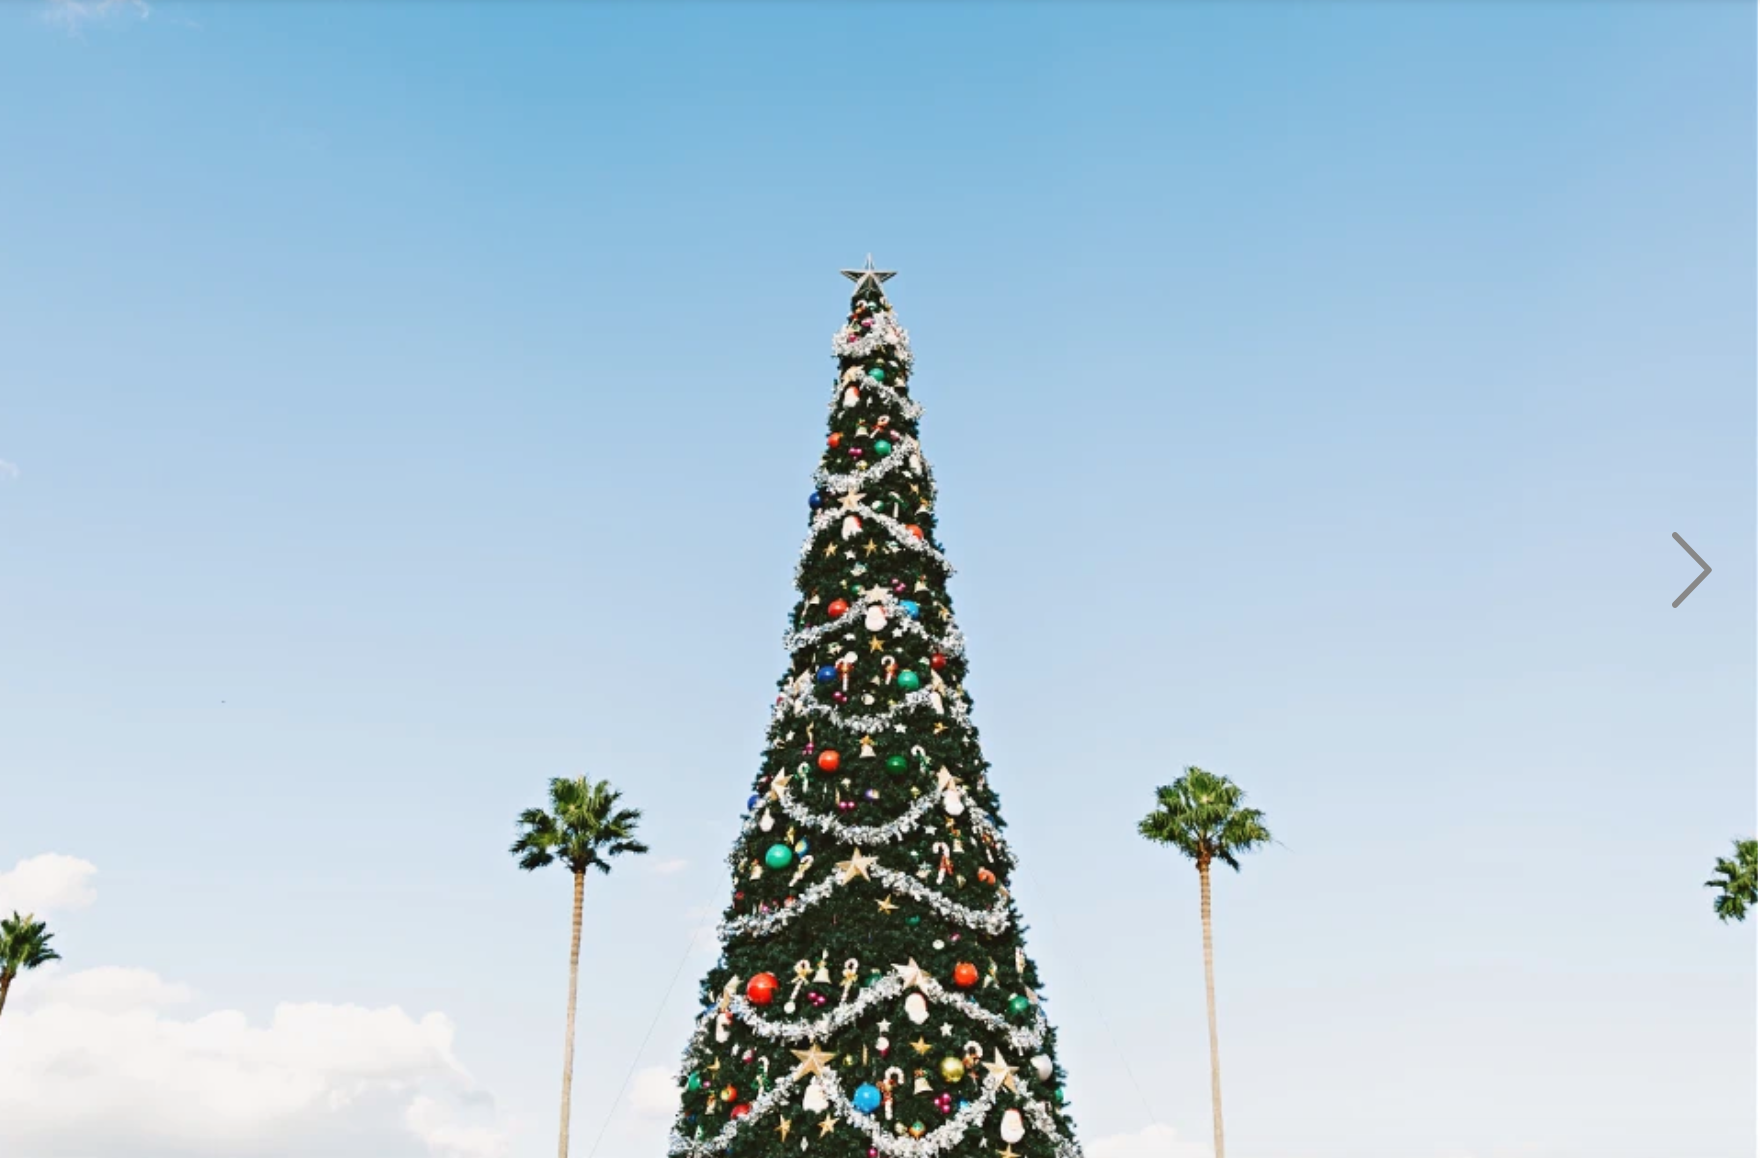 Christmas tree with palm trees